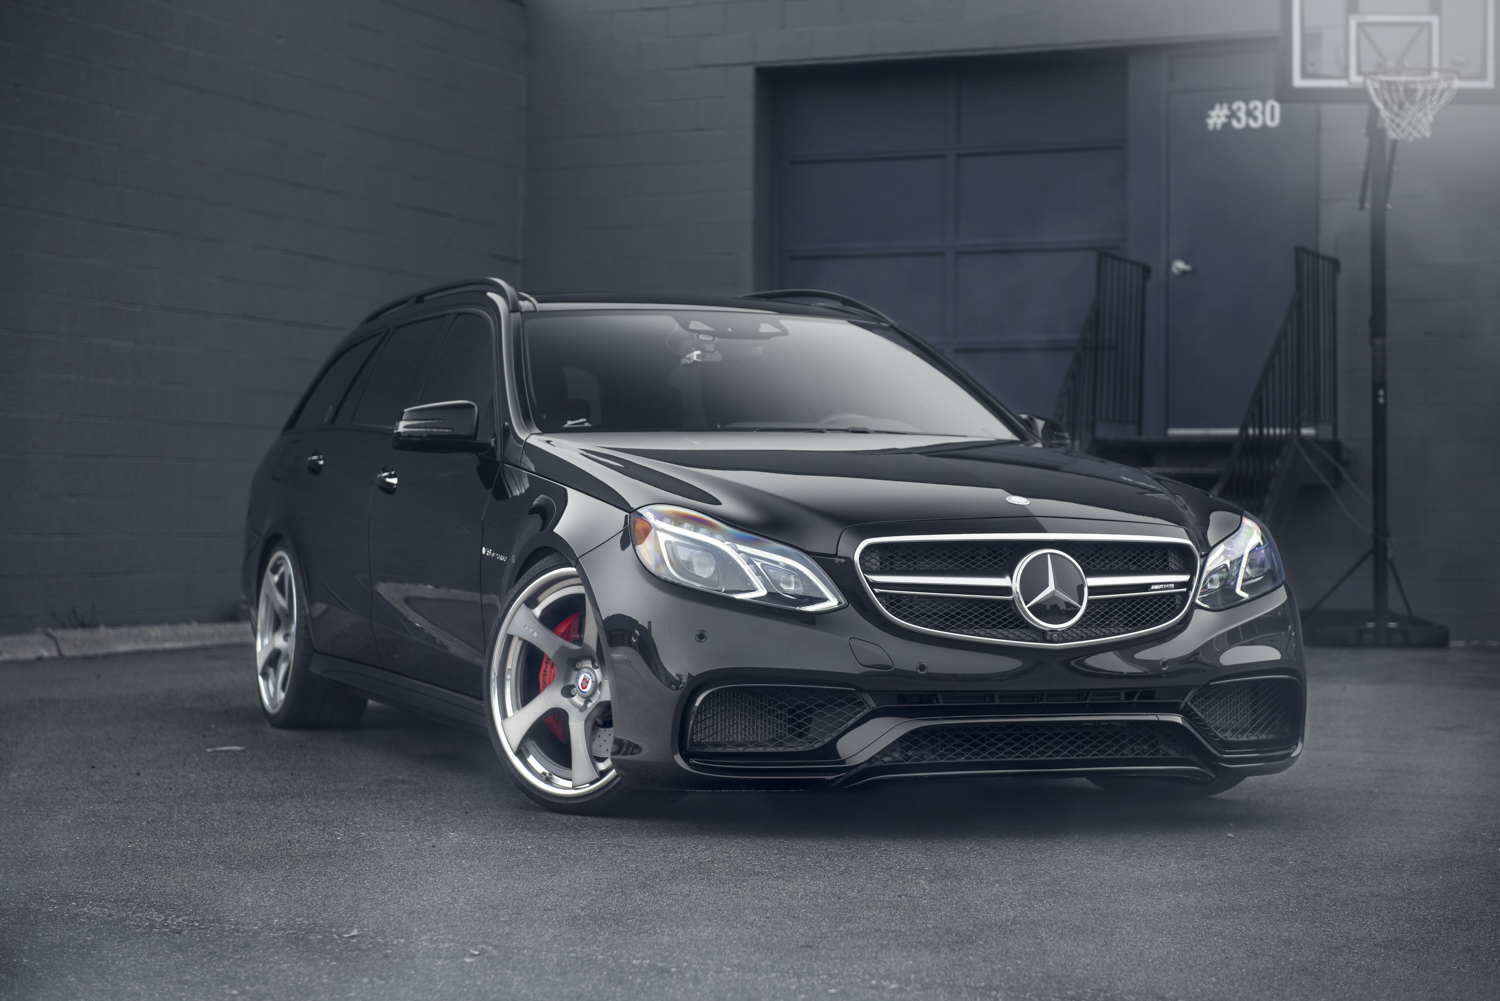 Mercedes benz amg e63 wagon midwest clear bra for Mercedes benz e 63 amg